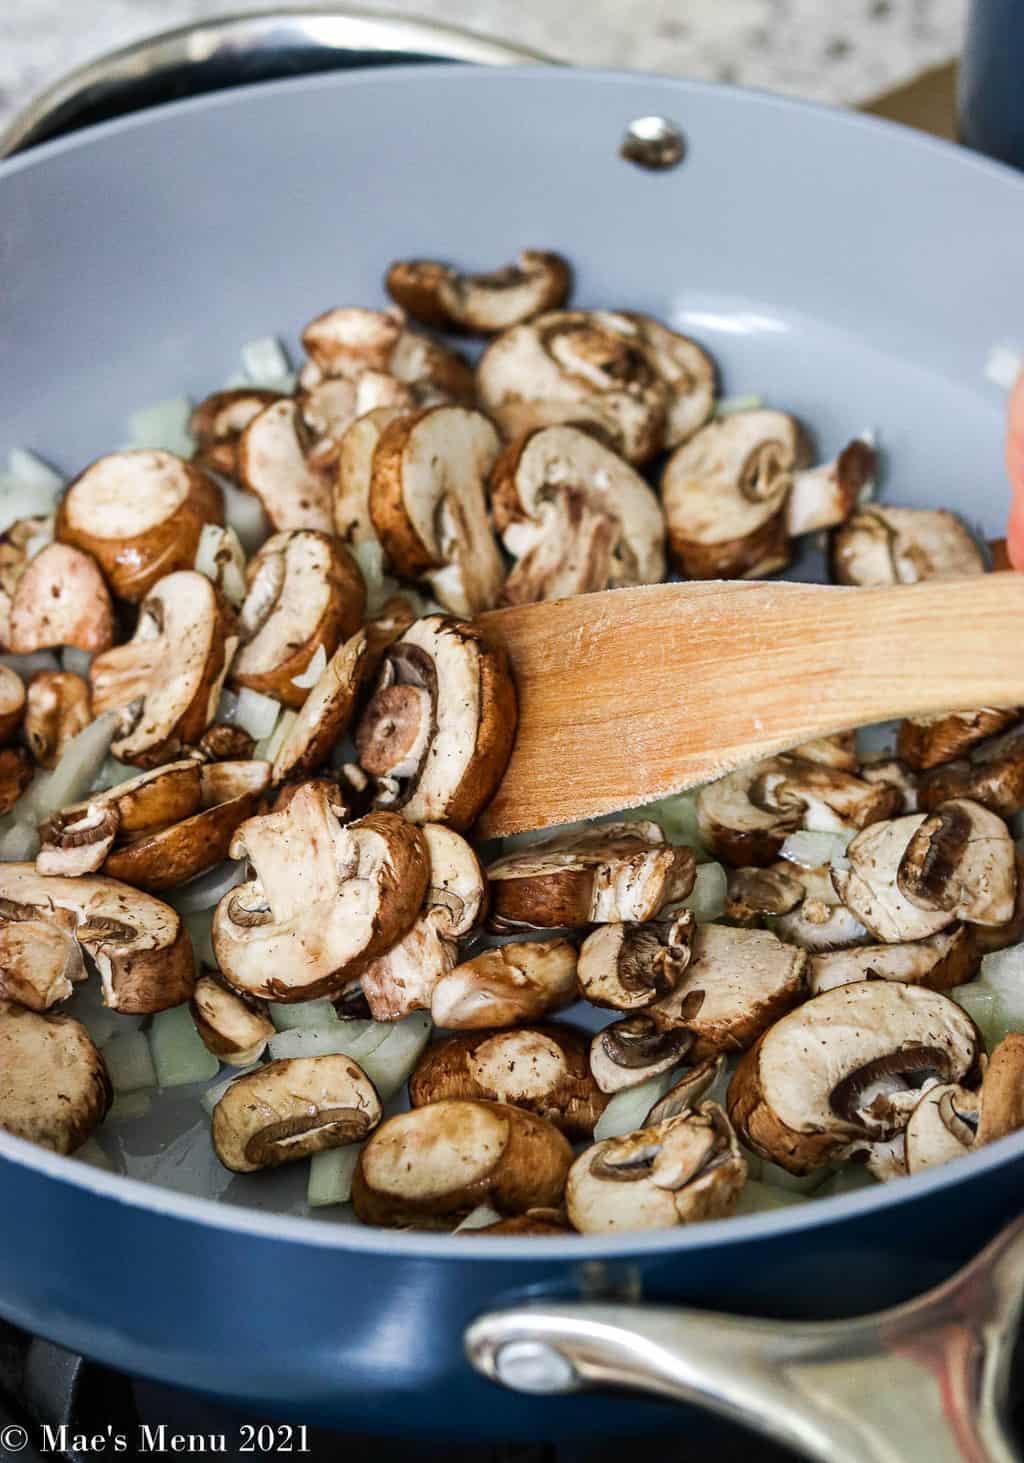 Sauteing mushrooms and onions in oil in a large saute pan